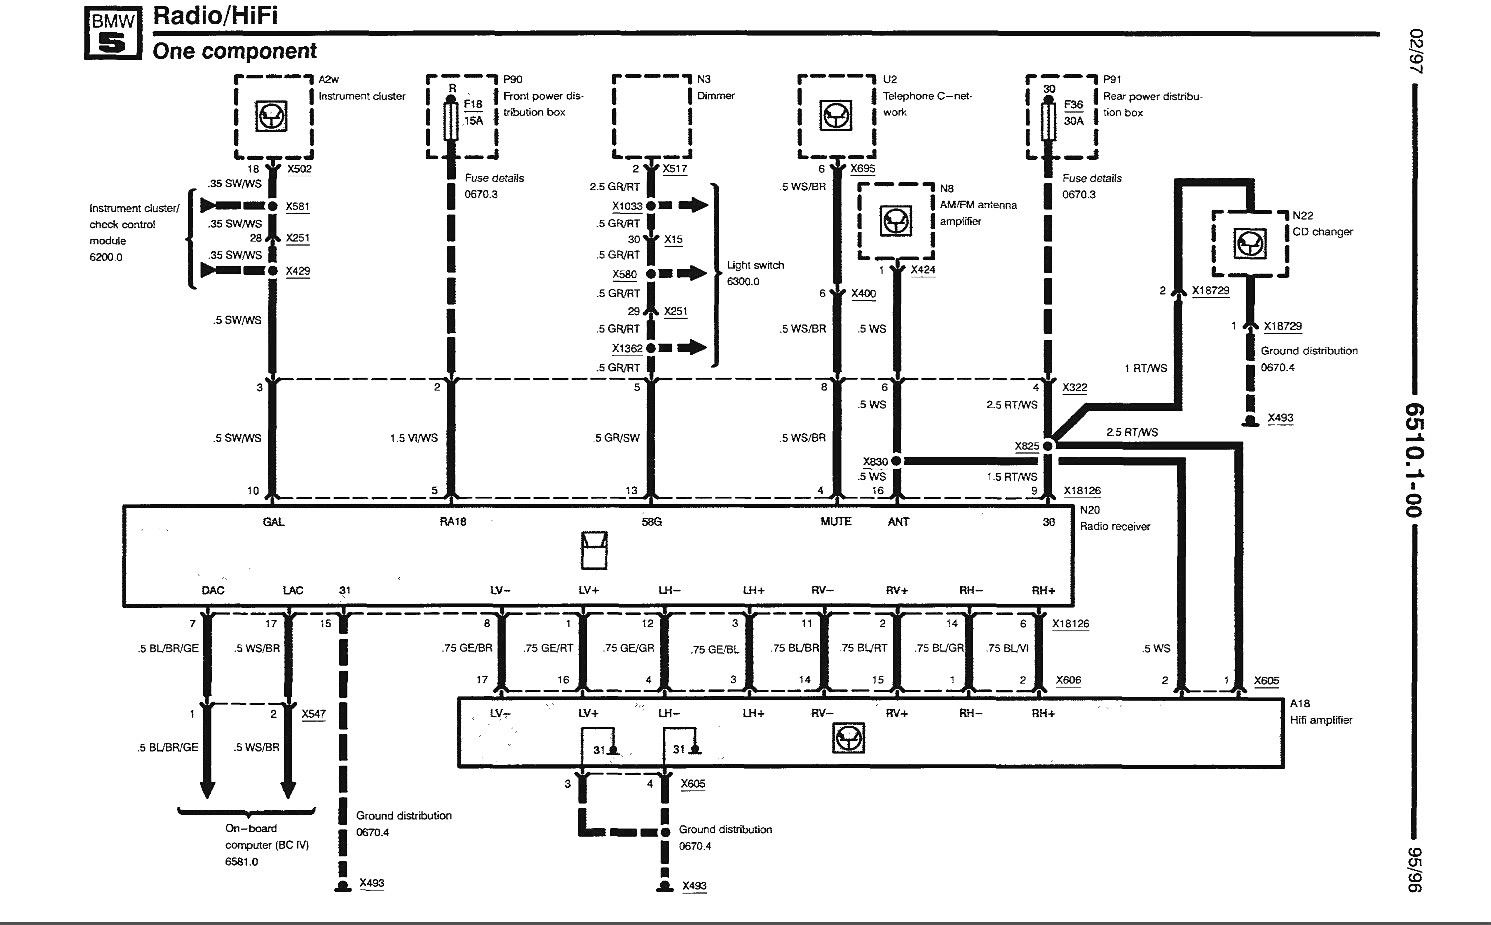 E39 Wiring Diagram For Dsp Amp Free Download Wiring Diagram -  9.2.wohnungzumieten.de • | Diagram, Bmw, Electronic schematicsPinterest